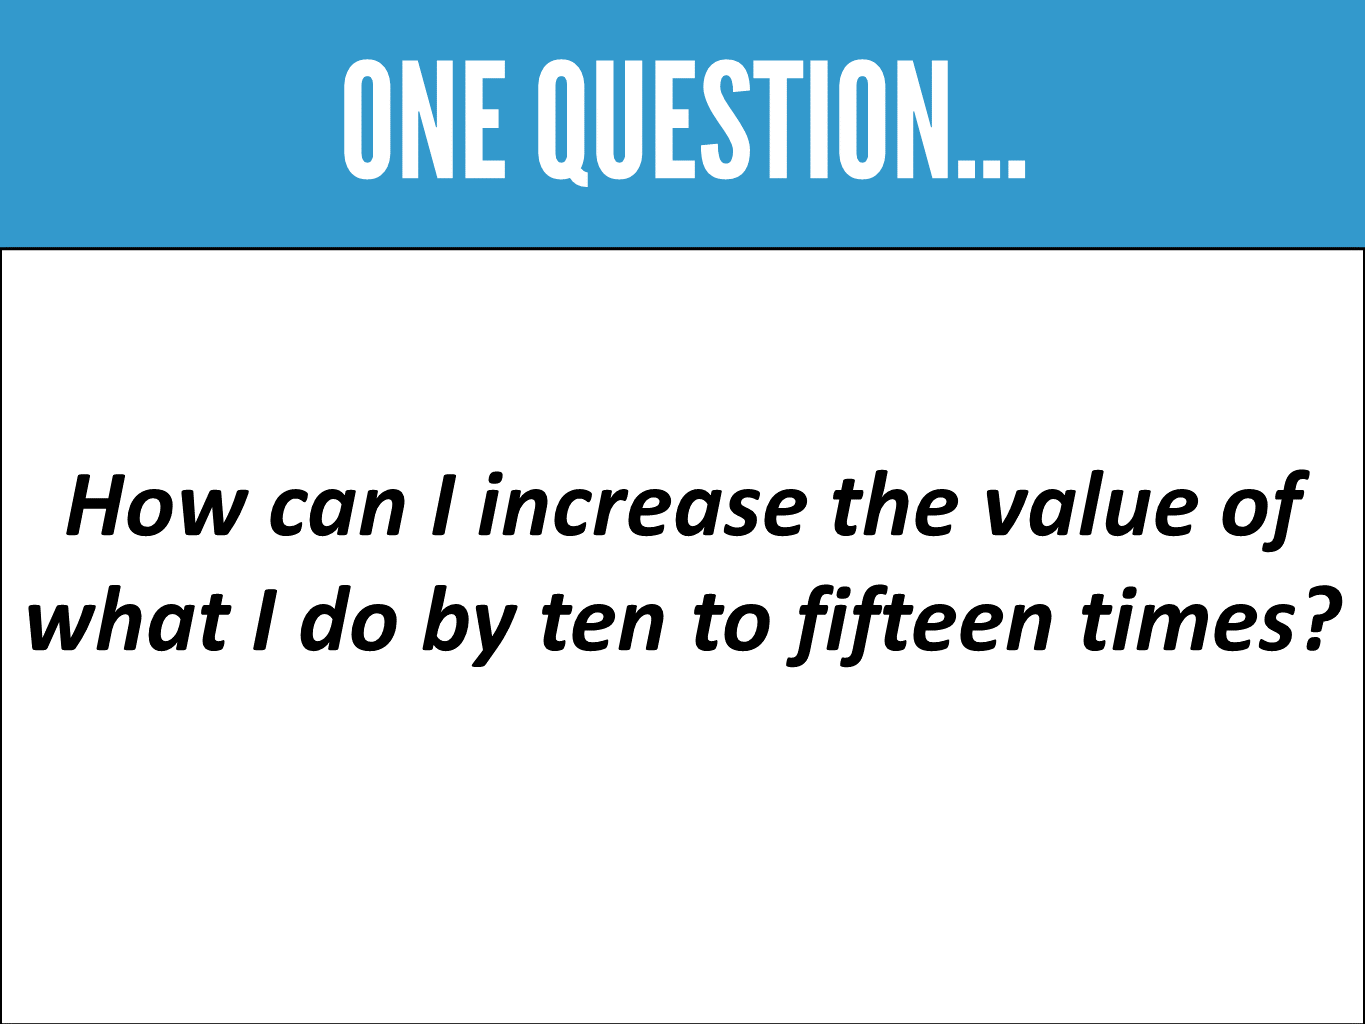 One Question to Brainstorm for Business and Marketing Ideas